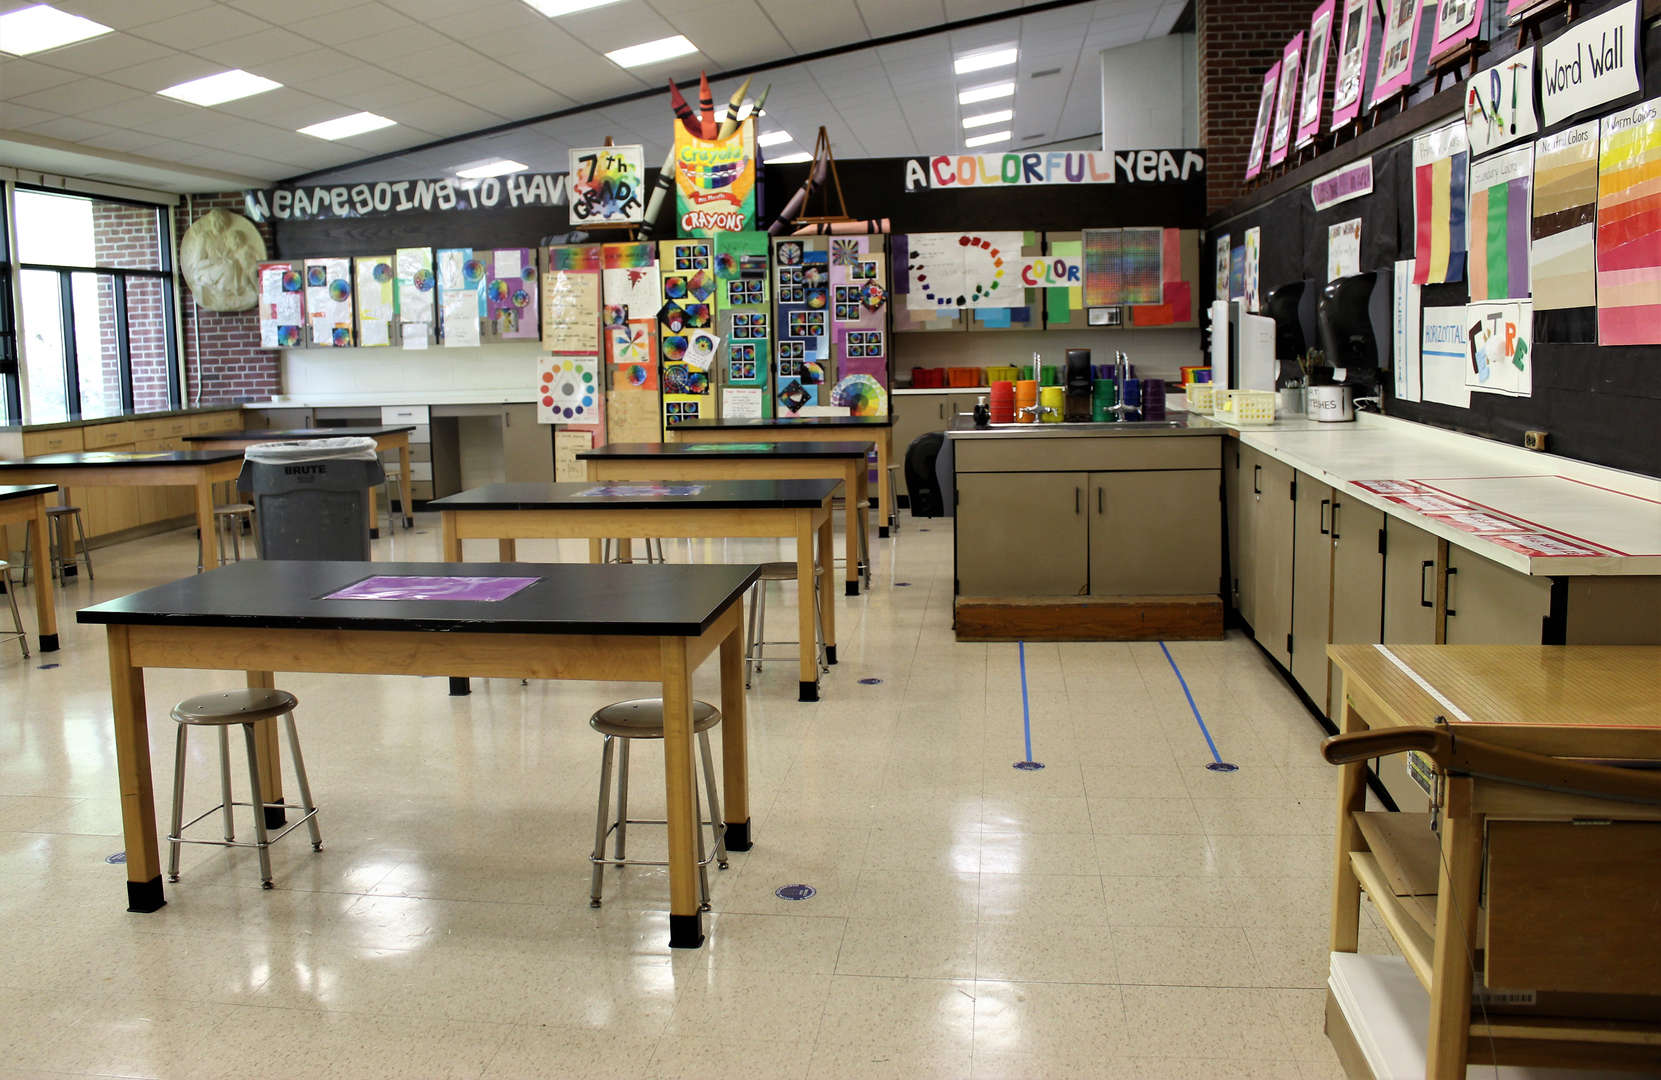 Photo of the art classroom, with social distancing stickers and less furniture.